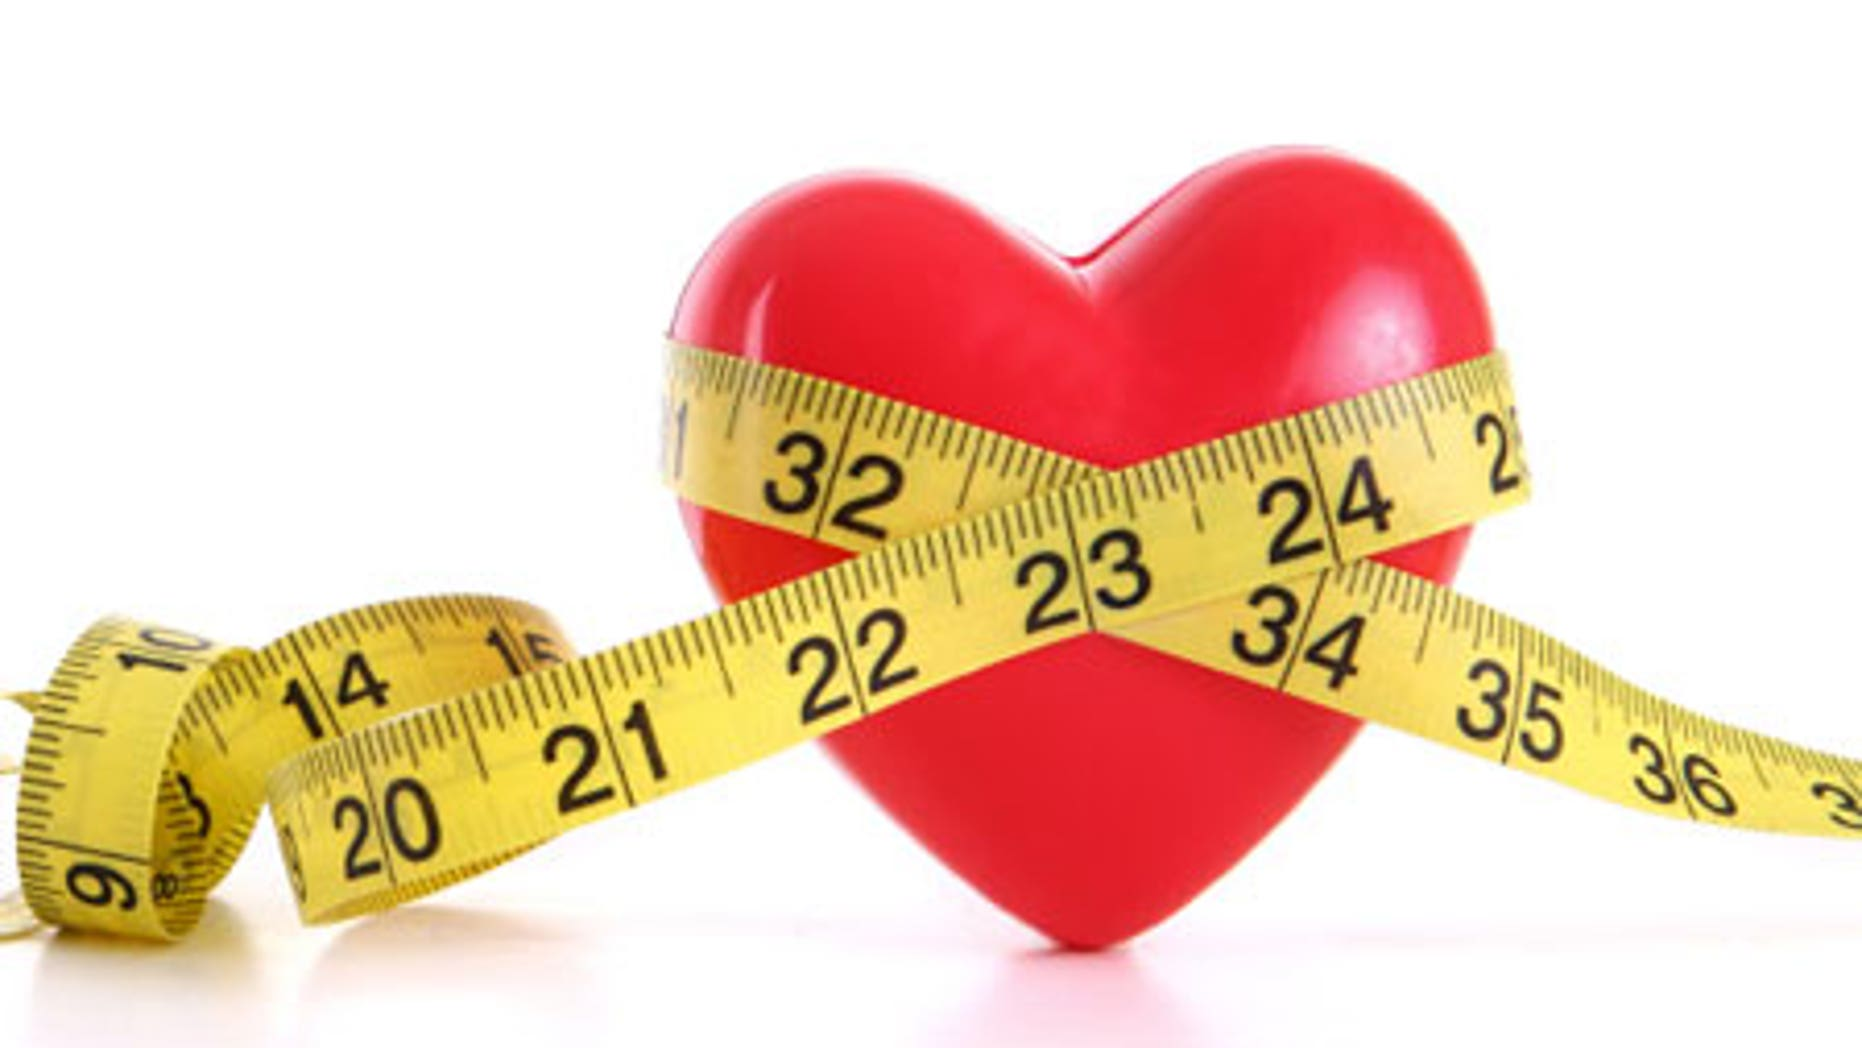 Diet and physical activity contribute to overall blood cholesterol levels as well as the cholesterol that is made naturally by the body, according to the AHA.